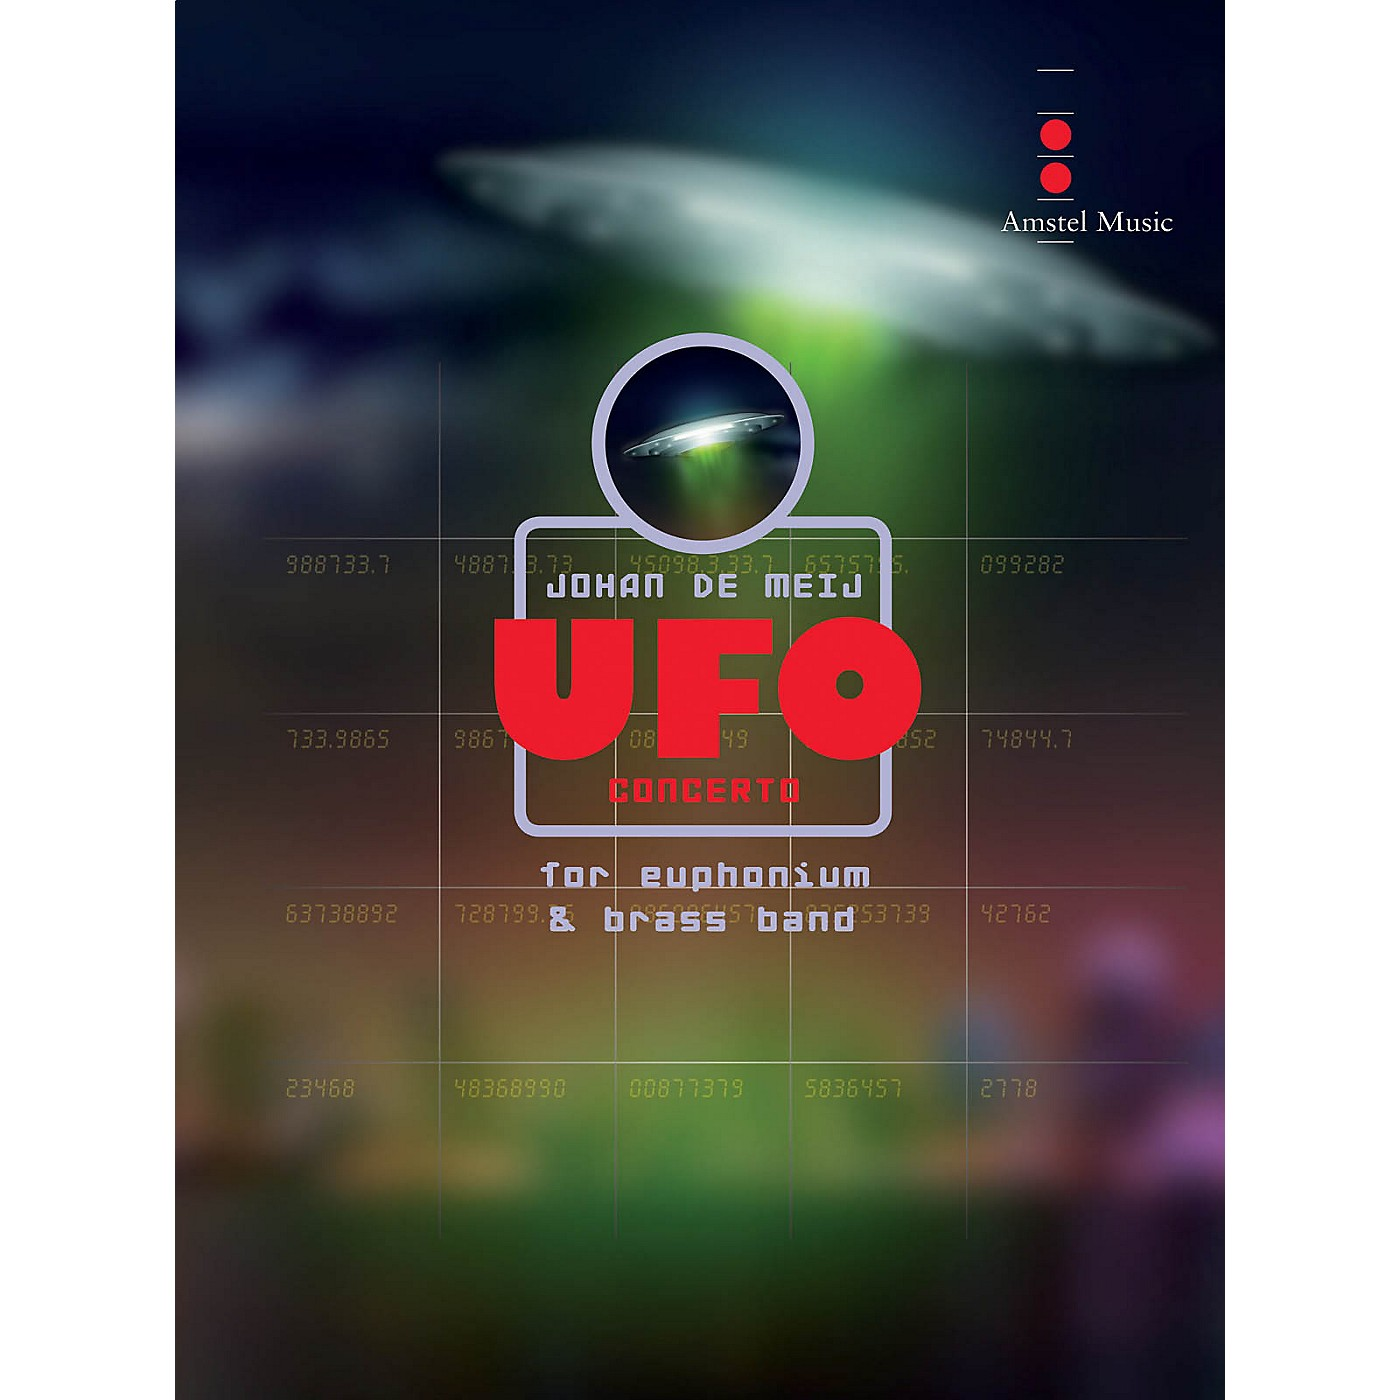 Amstel Music UFO Concerto (for Euphonium and Brass Band) (Score Only) Concert Band Level 5 Composed by Johan de Meij thumbnail